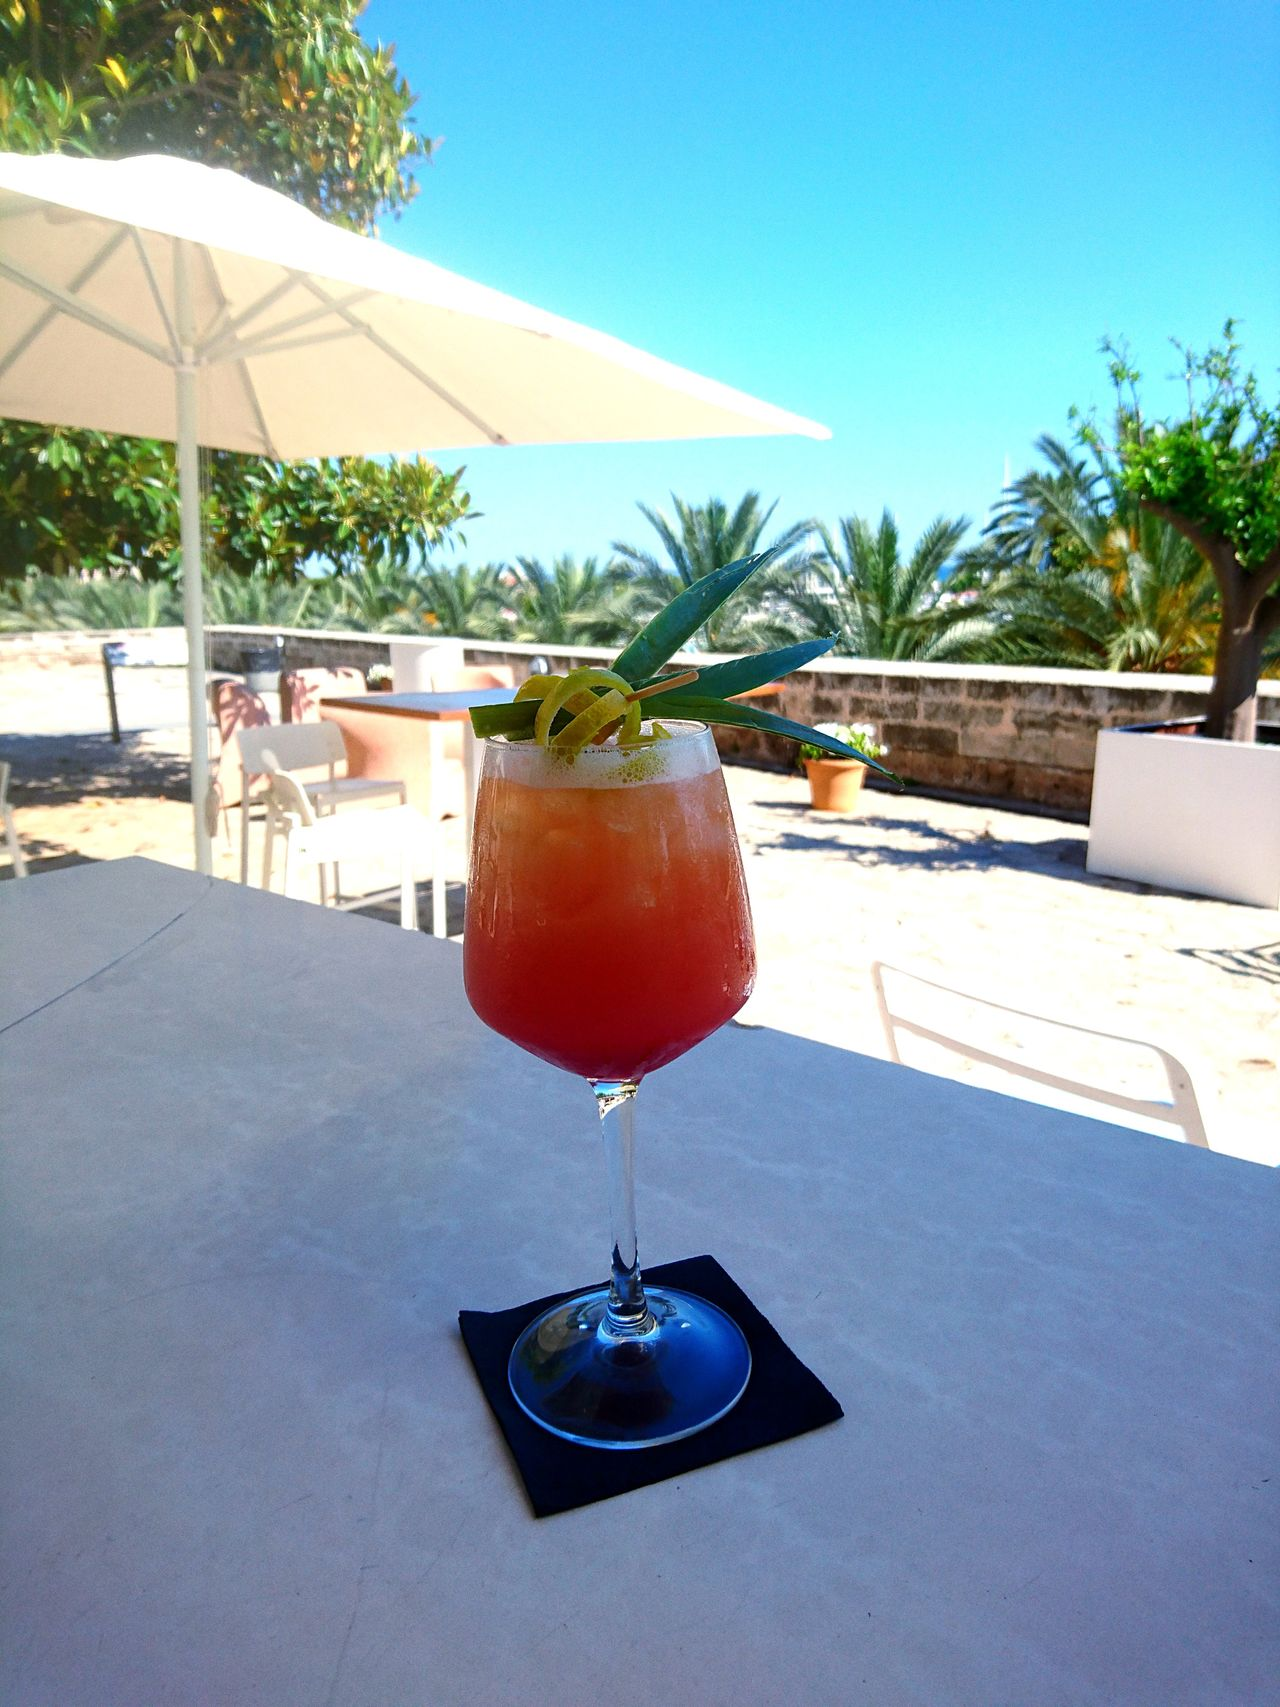 Cocktails🍹 Cocktail Luxury Swimming Pool Luxury Hotel Tourist Resort Architecture Hotel Water Palm Tree Wealth Table No People Patio Vacations Day Outdoors Tree Nature Palm Palm Cockteil